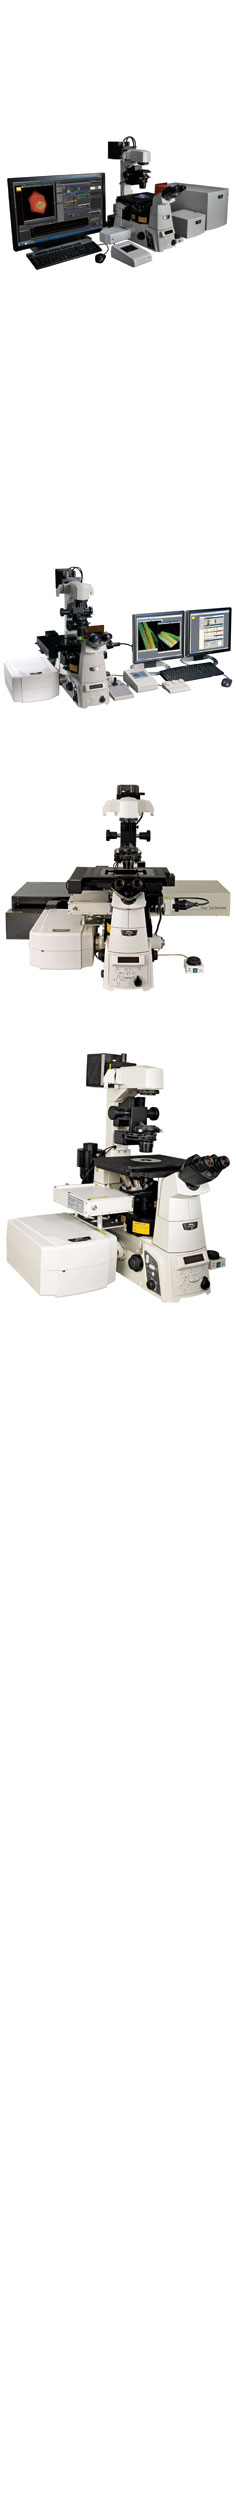 Nikon Confocal Microscopes